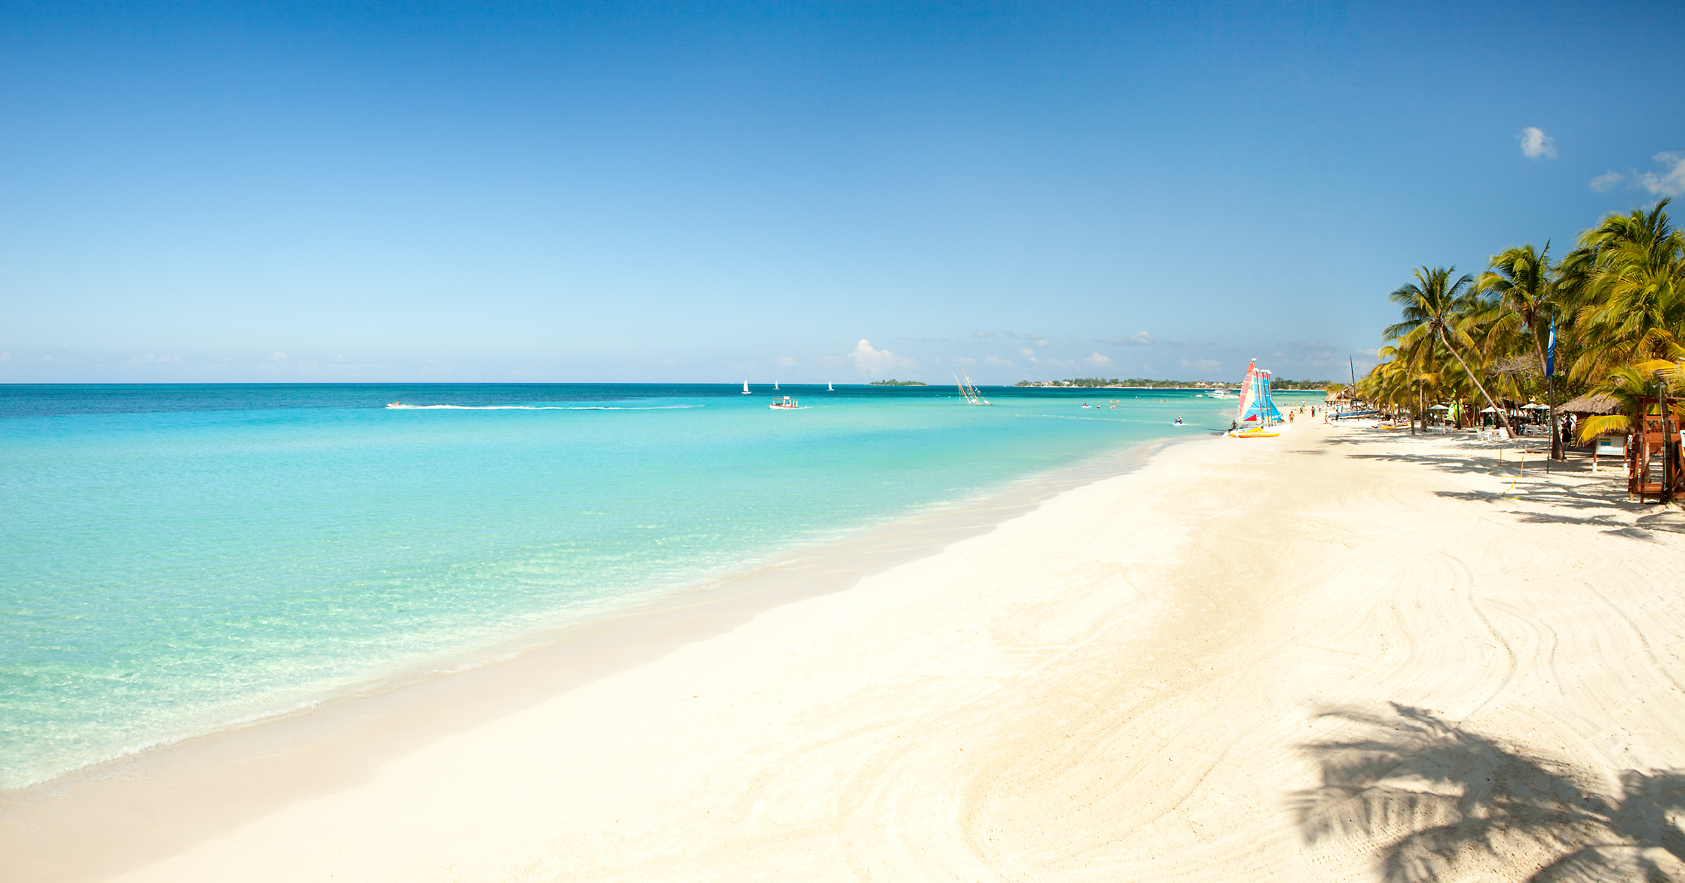 Beaches in Jamaica - Couples Resorts